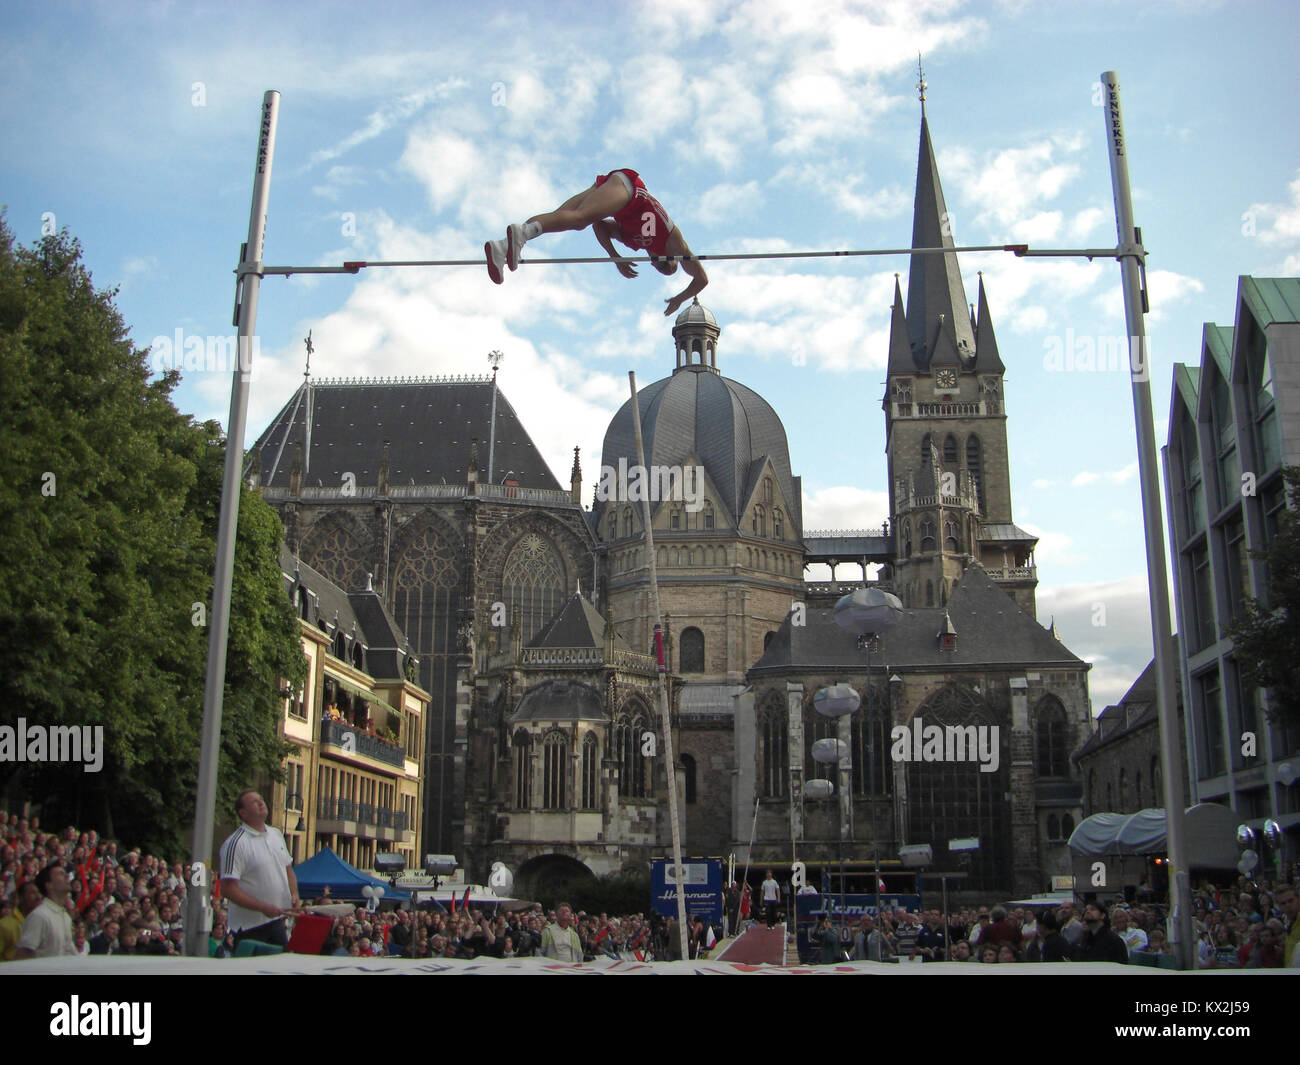 Aachen, Germany - September 2, 2009: NetAachen Domspringen in front of Aachen Cathedral - Stock Image